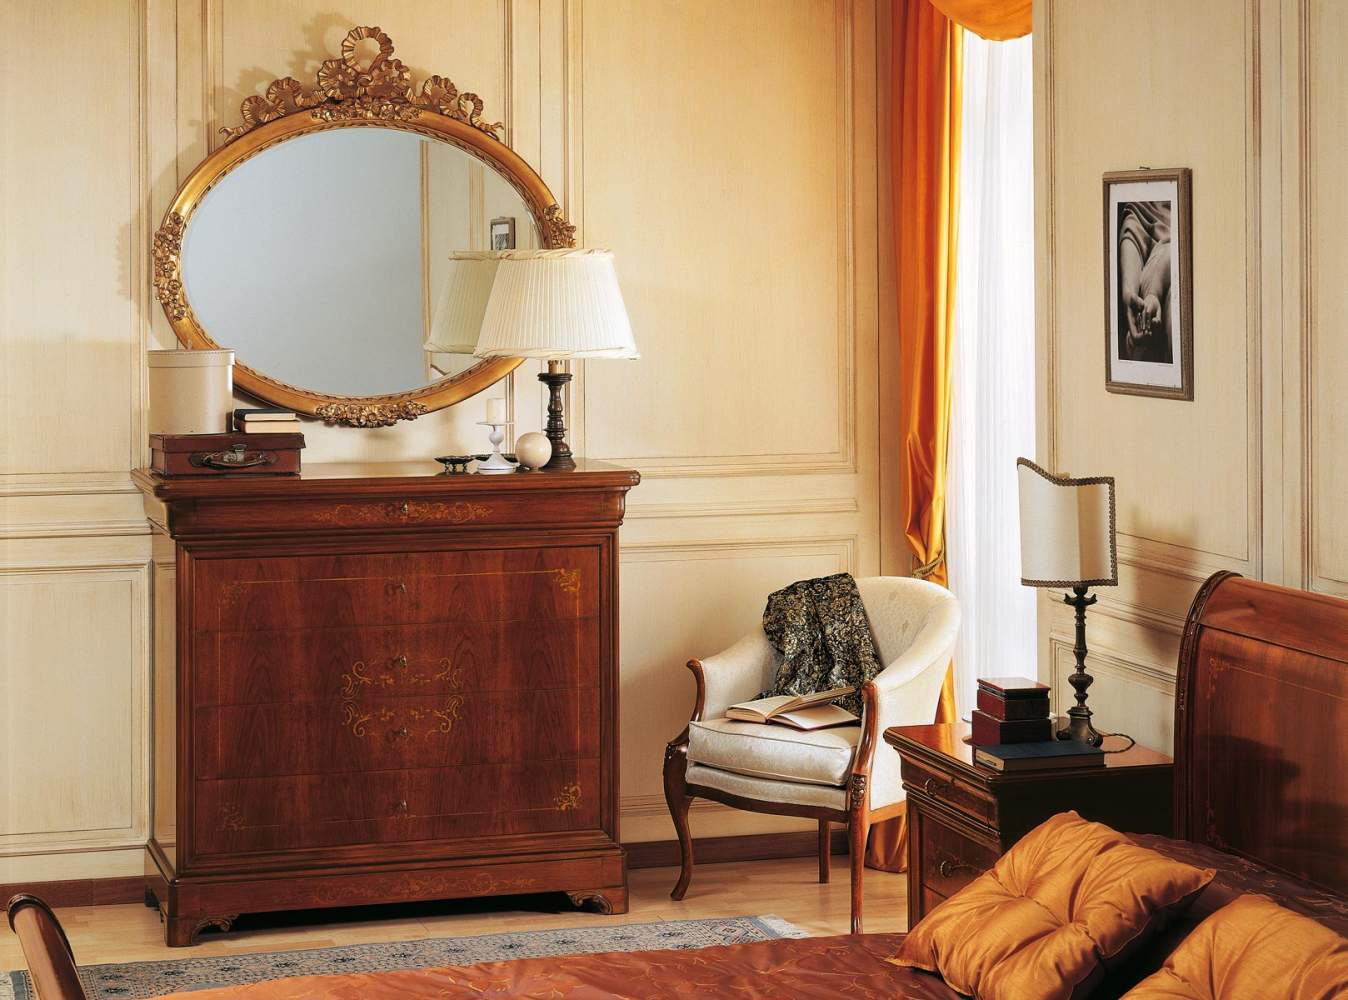 19th century french bedroom, inlaid chest of drawers and golden mirror